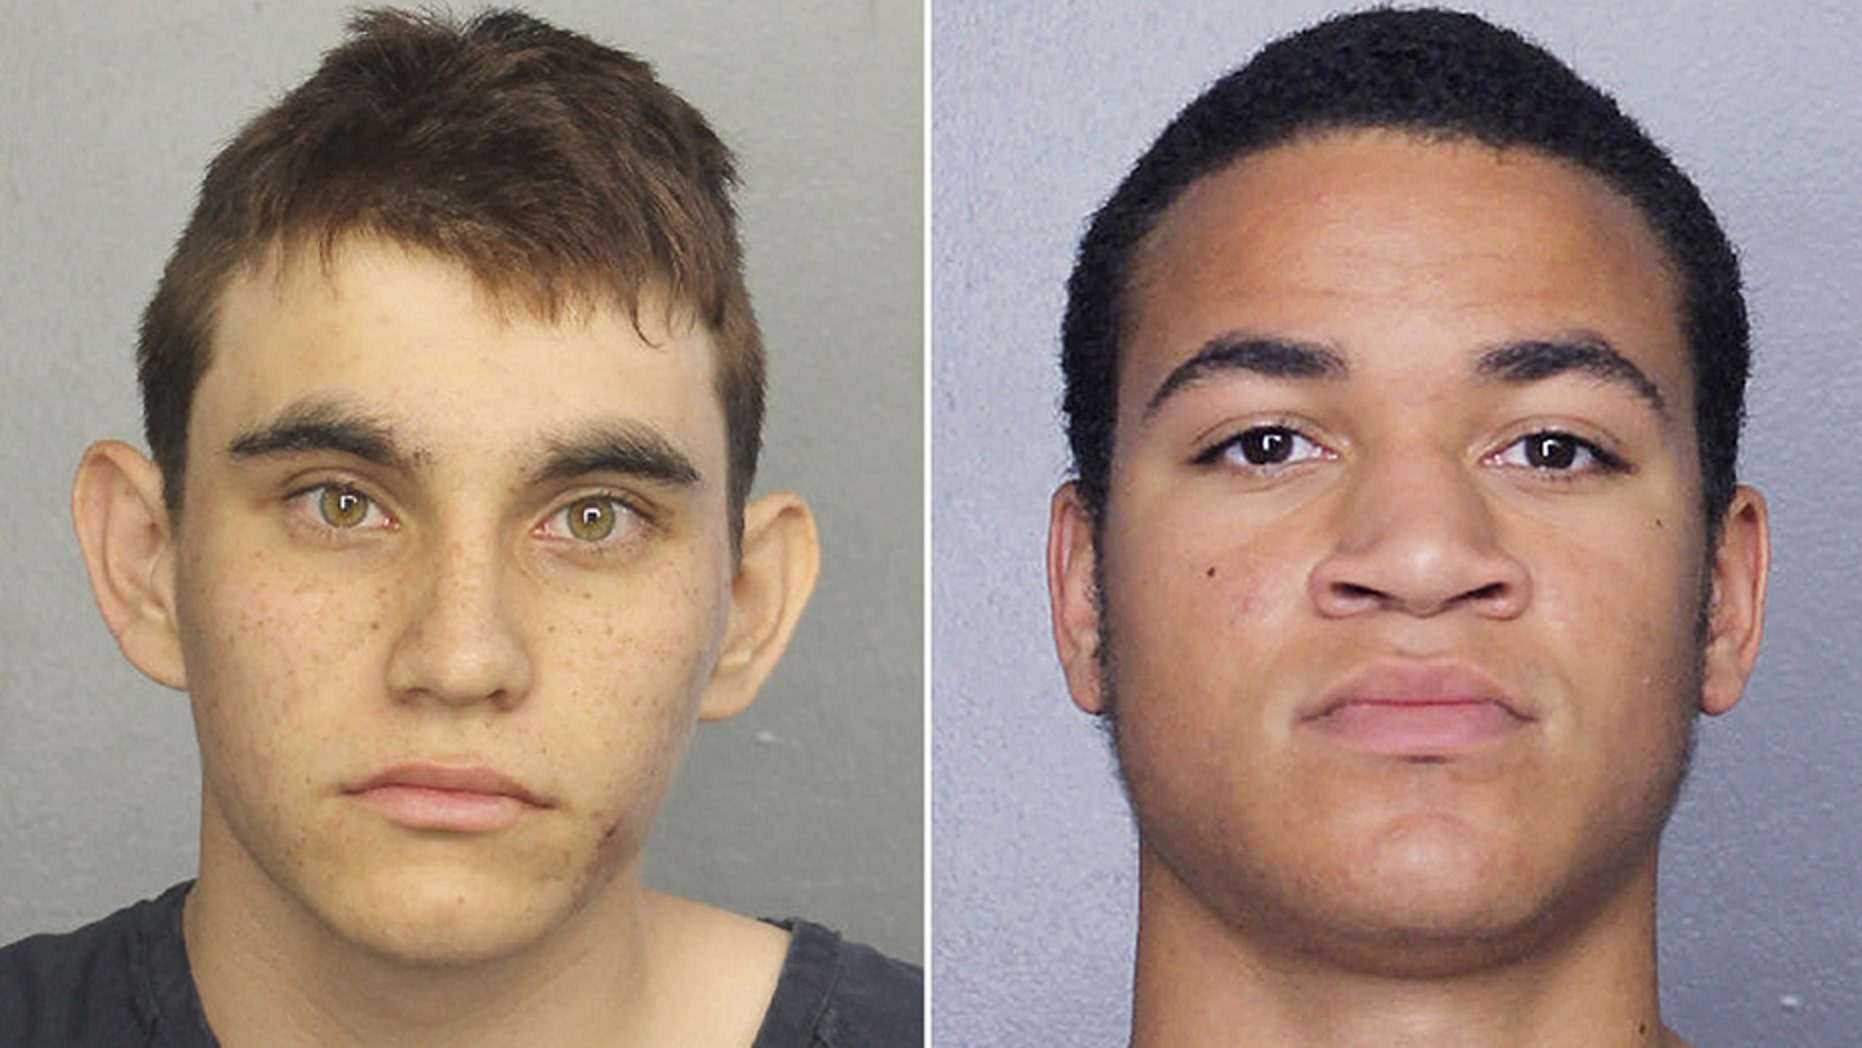 "Zachary Cruz (right), 18, was arrested Monday after he ""unlawfully entered the school grounds"" of Marjory Stoneman Douglas High School, the same school his brother, Nikolas Cruz (left), is accused if entering and gunning down 17 people."